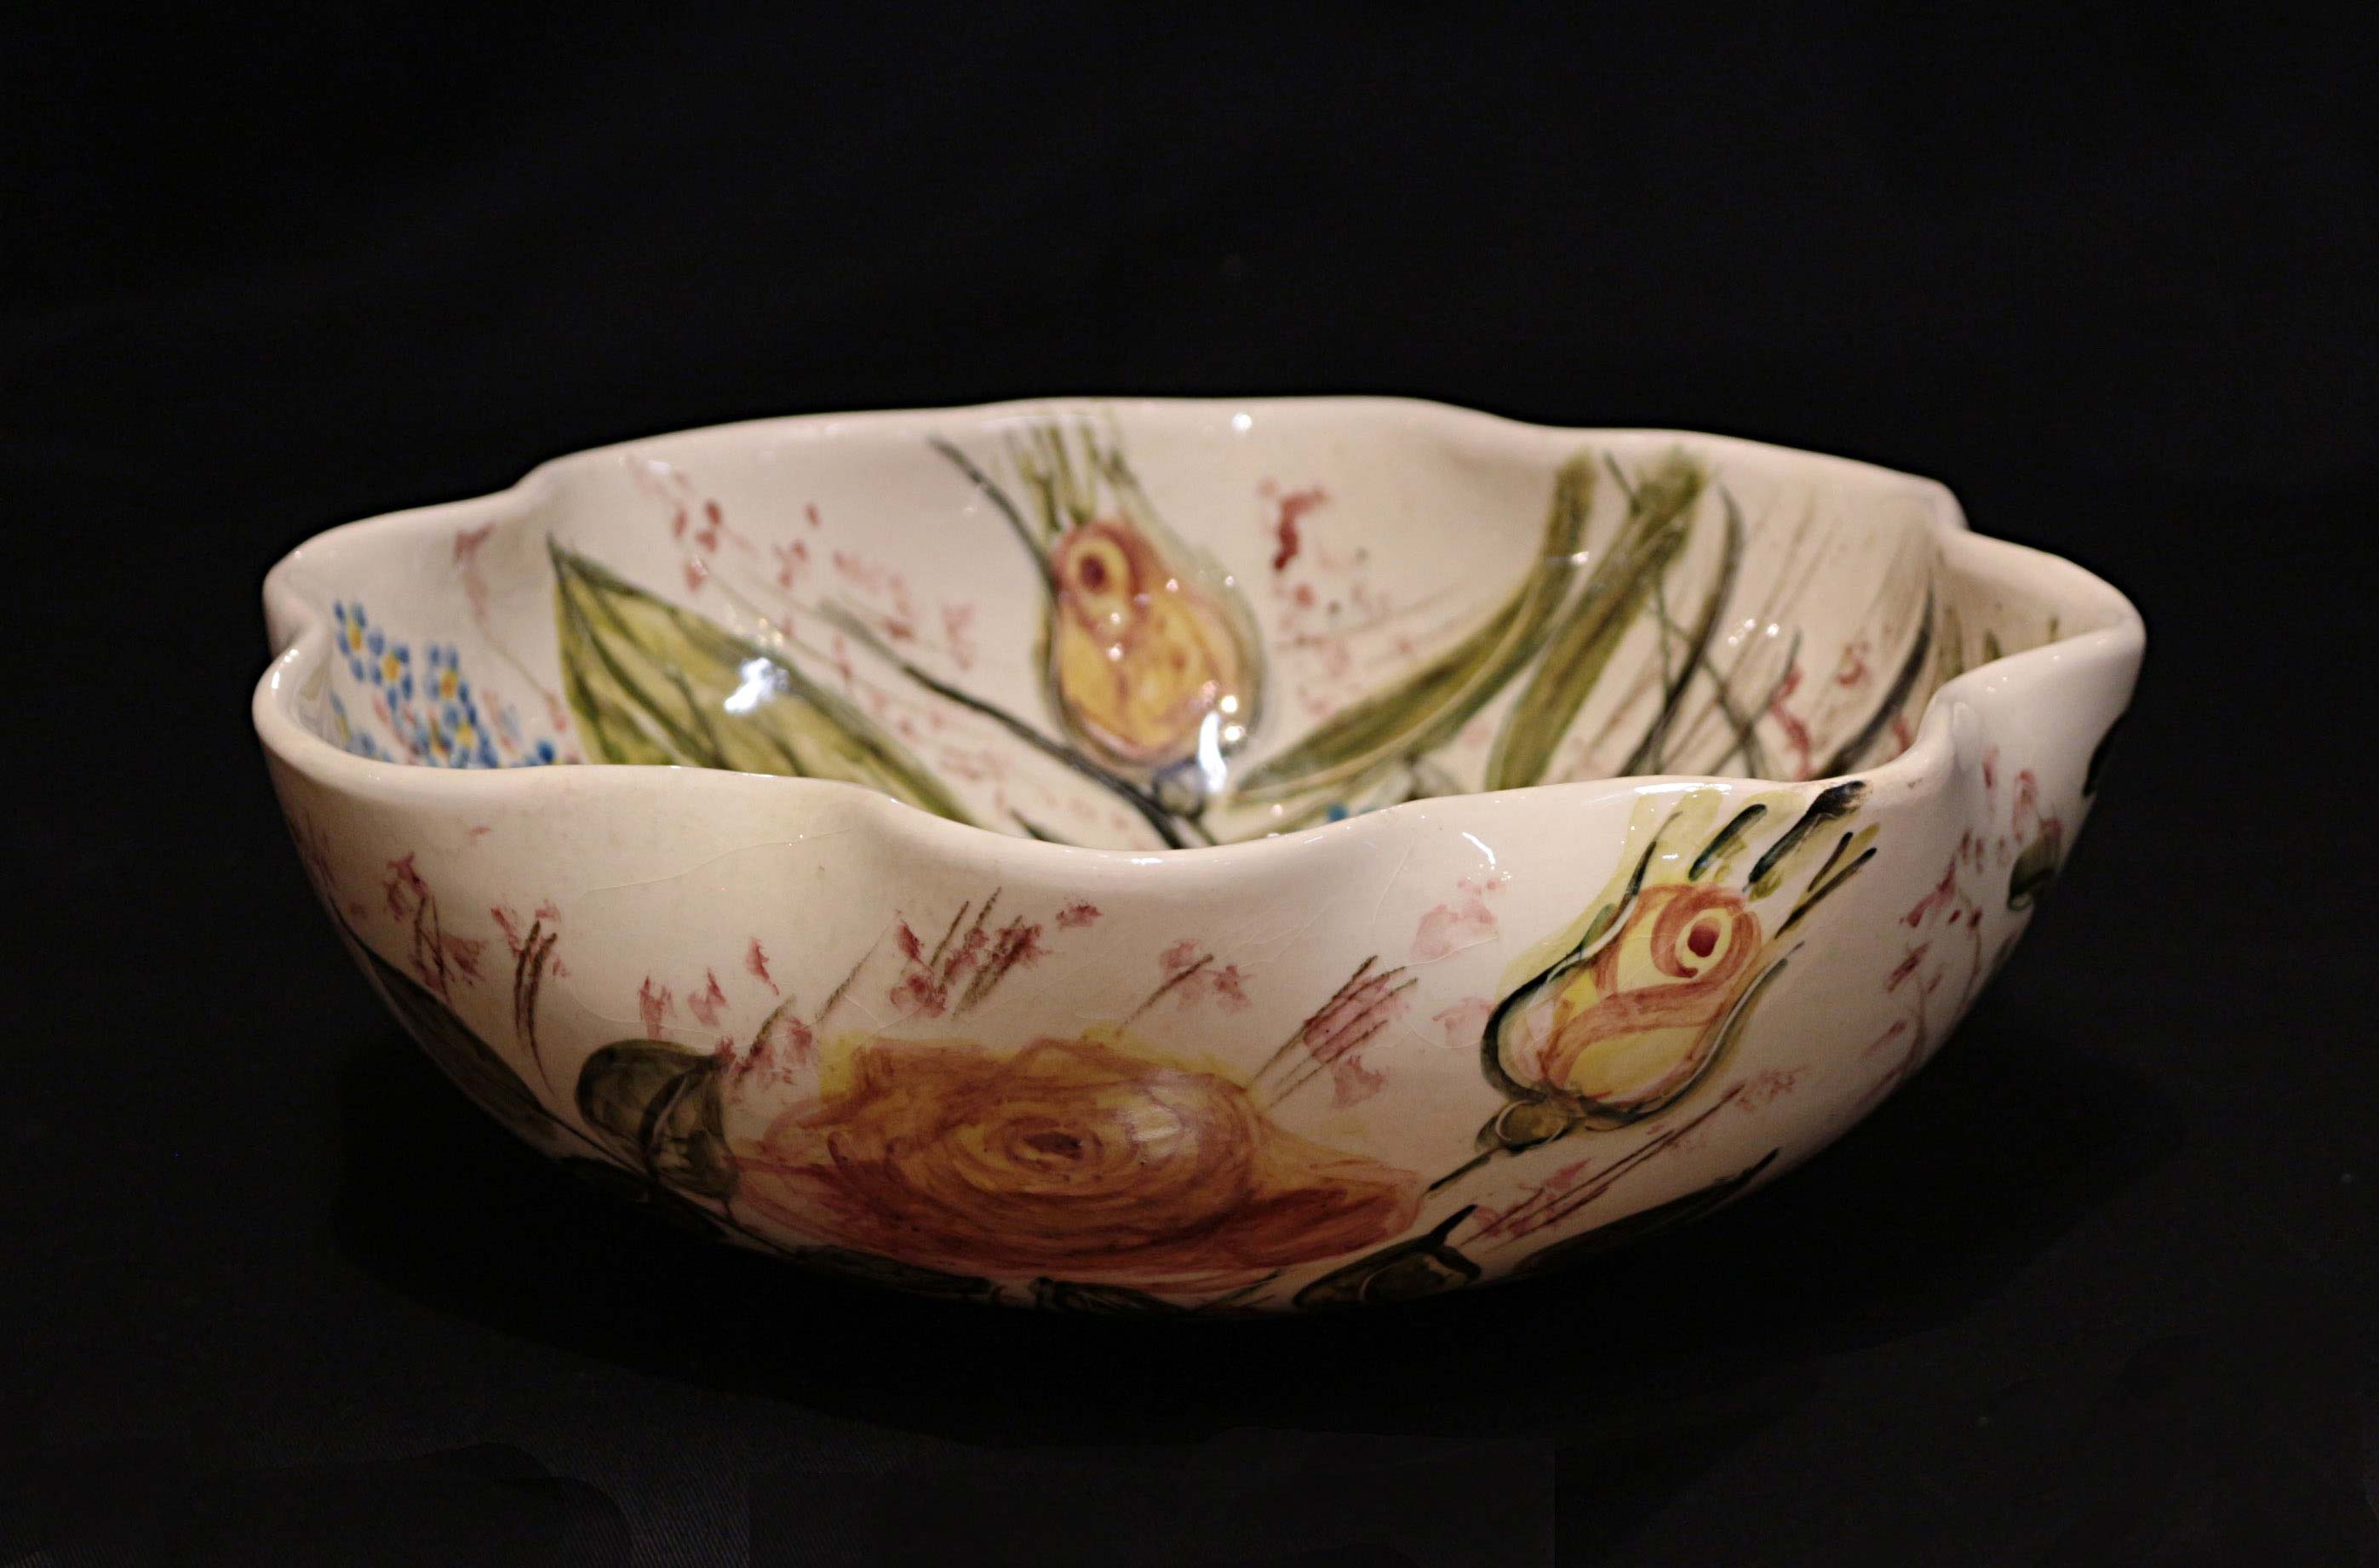 Daisy Ware Australian Pottery Fruit Bowl The Merchant Of